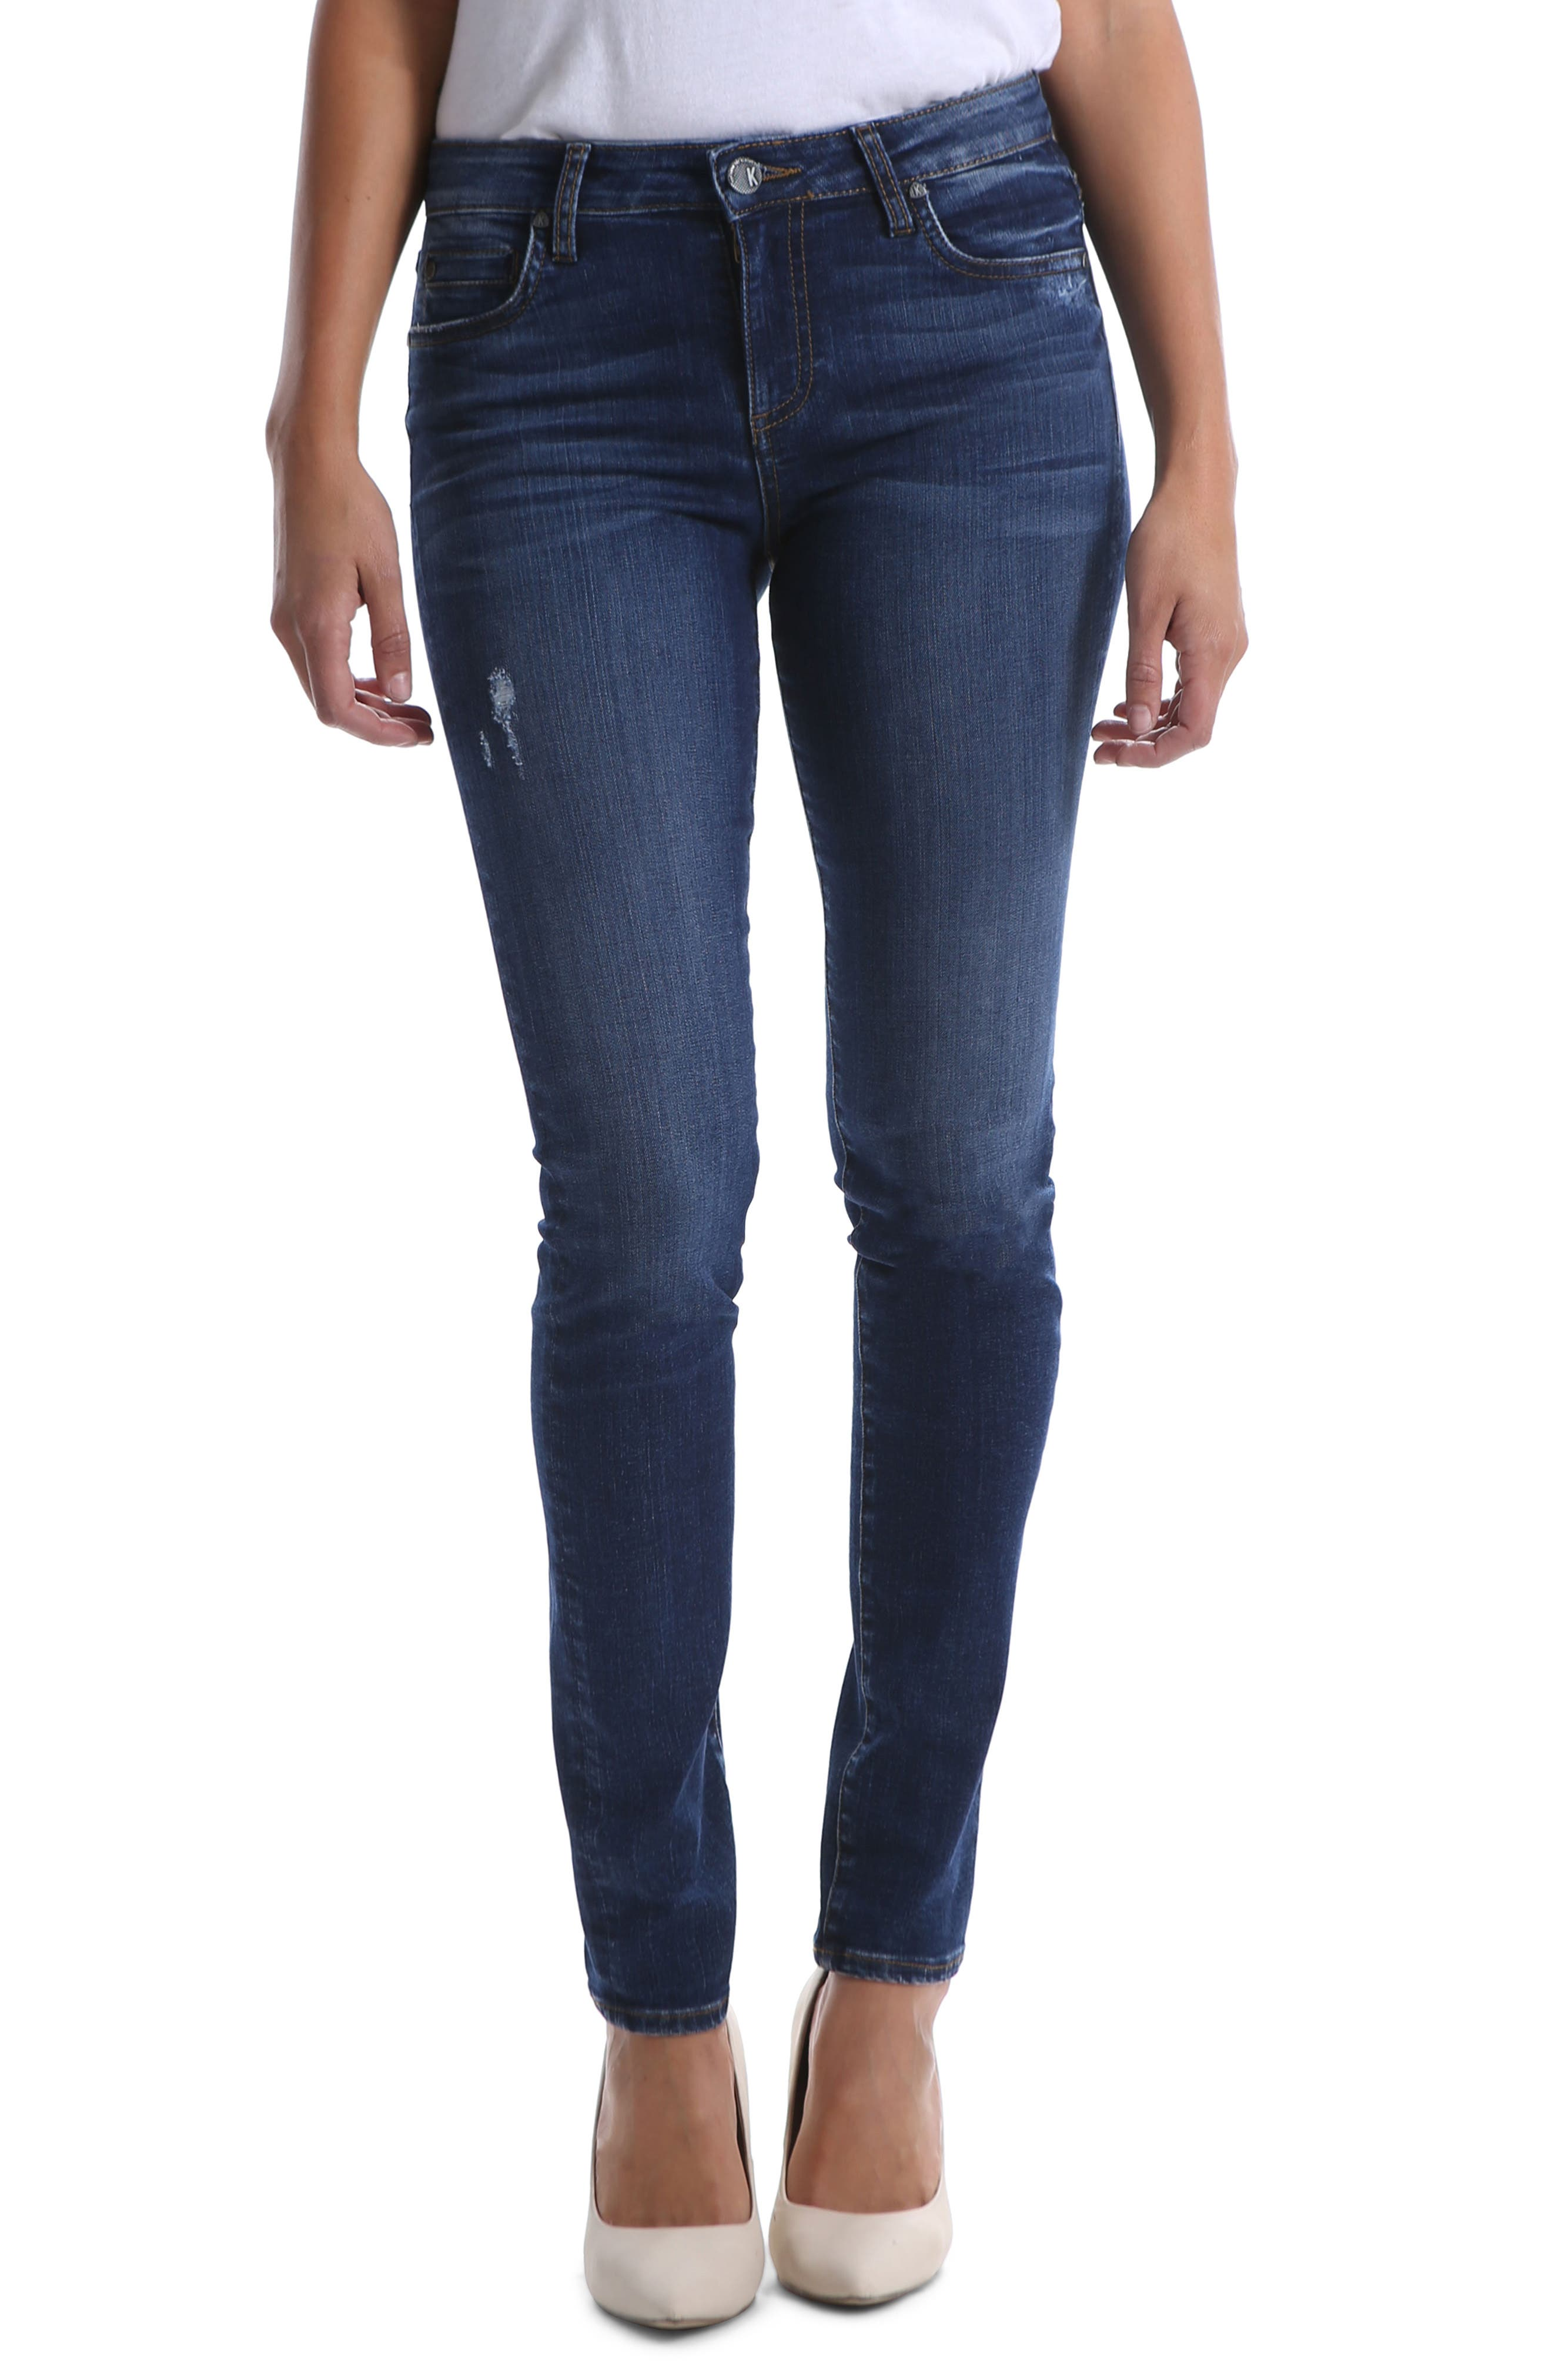 Kut From The Kloth Diana Skinny Jeans, Black